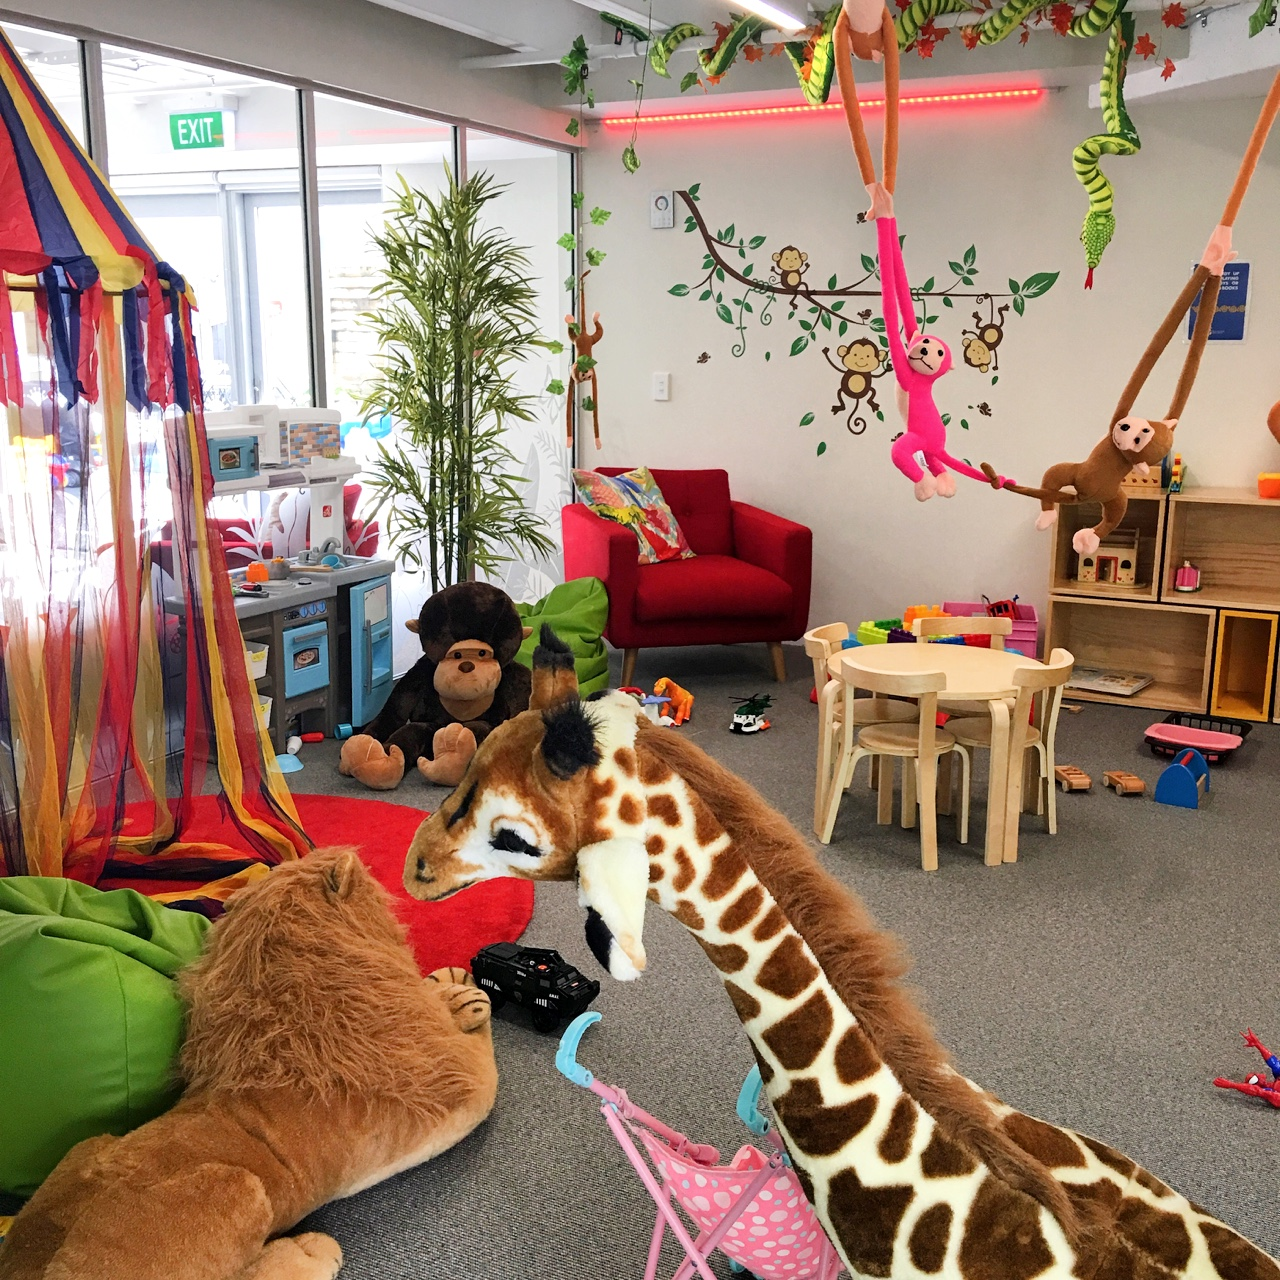 ronald mcdonald house childrens play room with toys